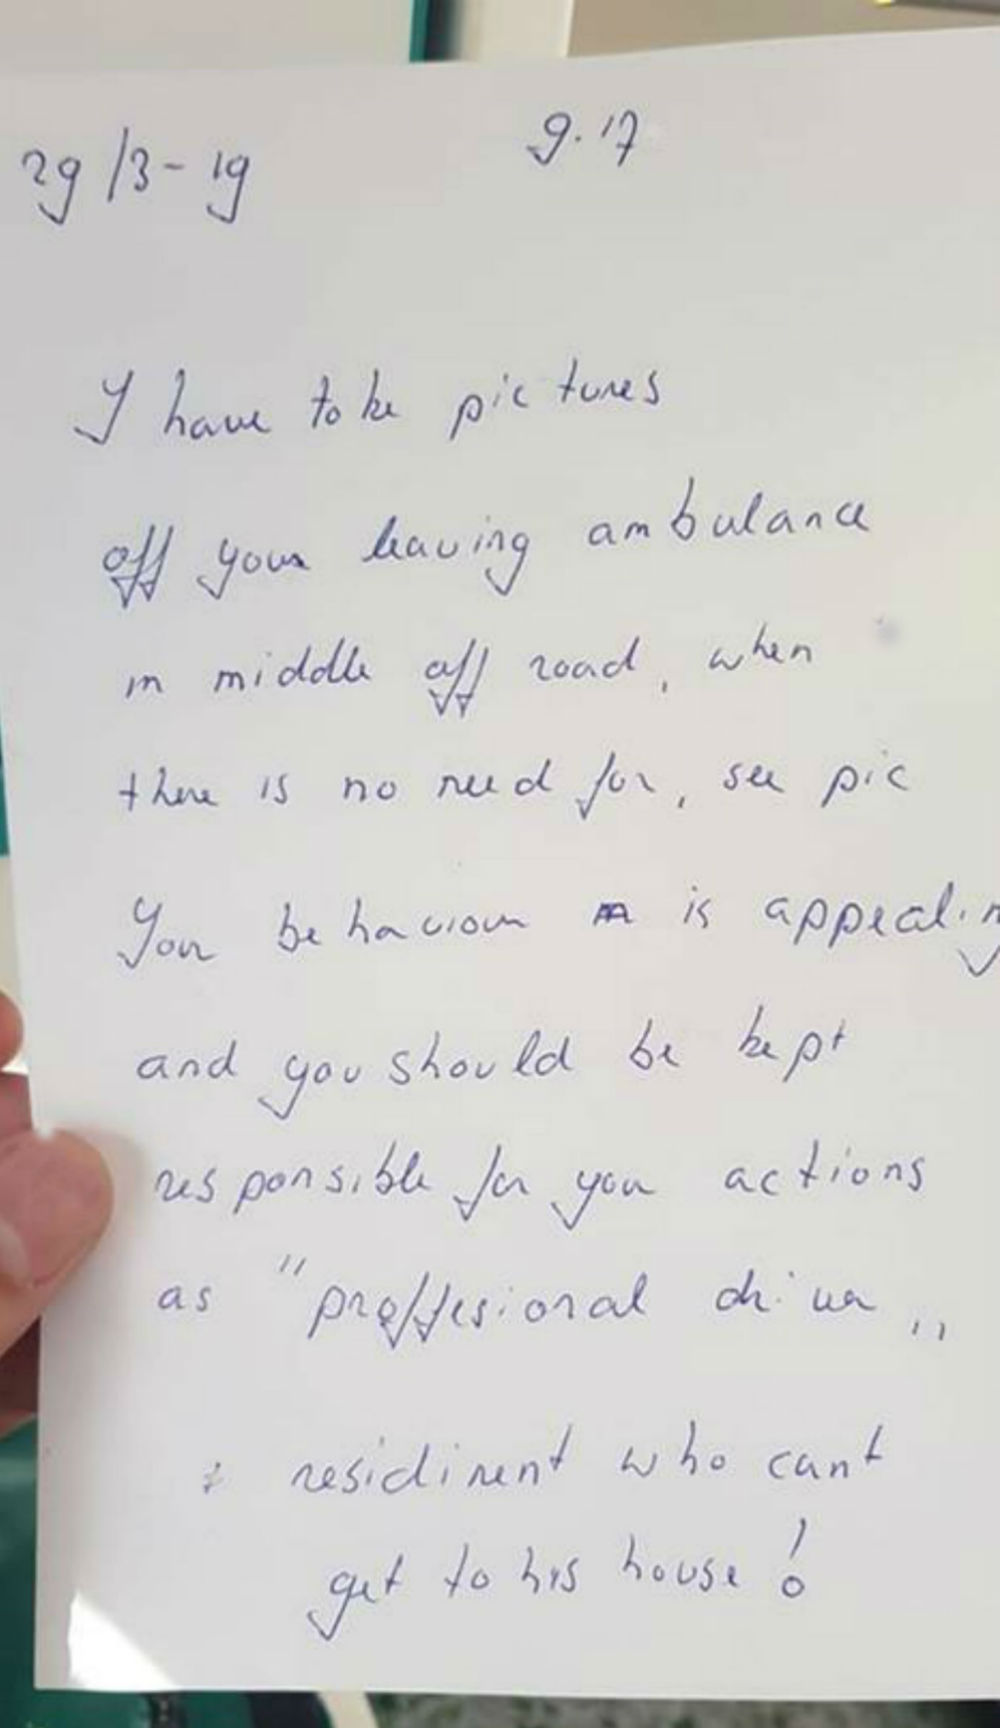 Paramedic Shares Note Abusing Him For Blocking Home As He